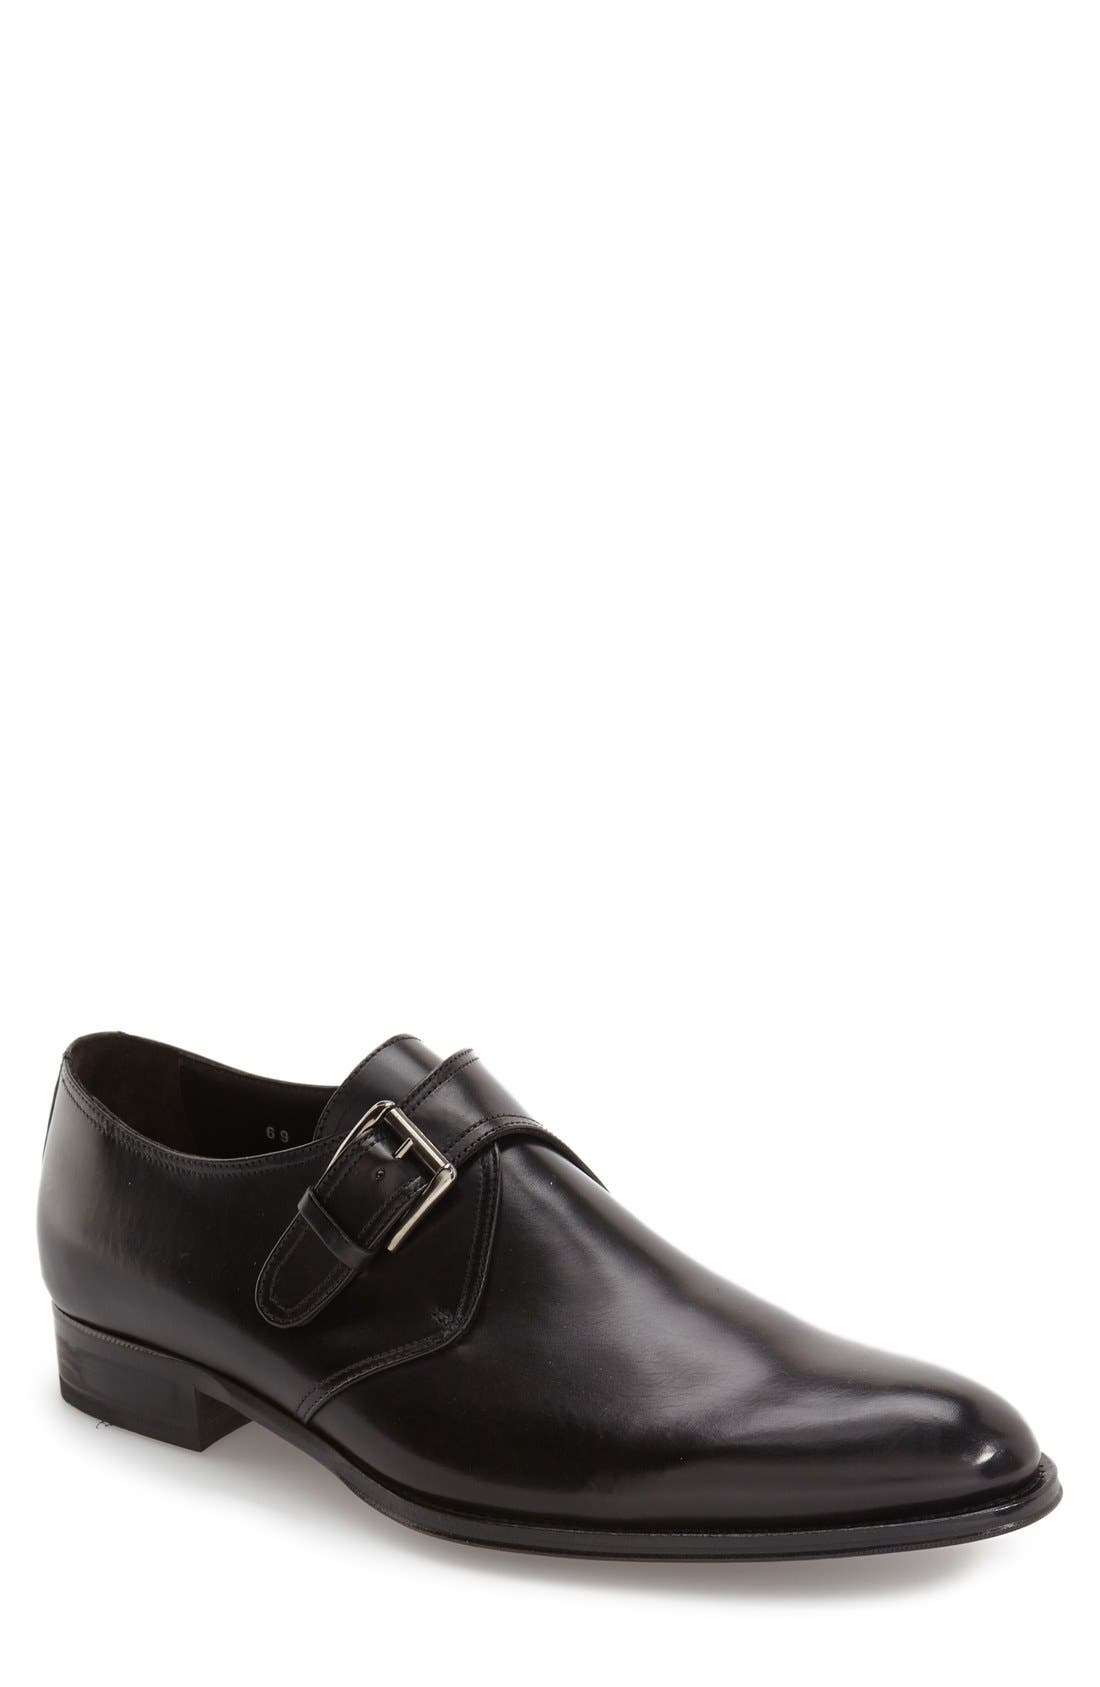 TO BOOT NEW YORK Emmett Monk Strap Shoe, Main, color, BLACK LEATHER